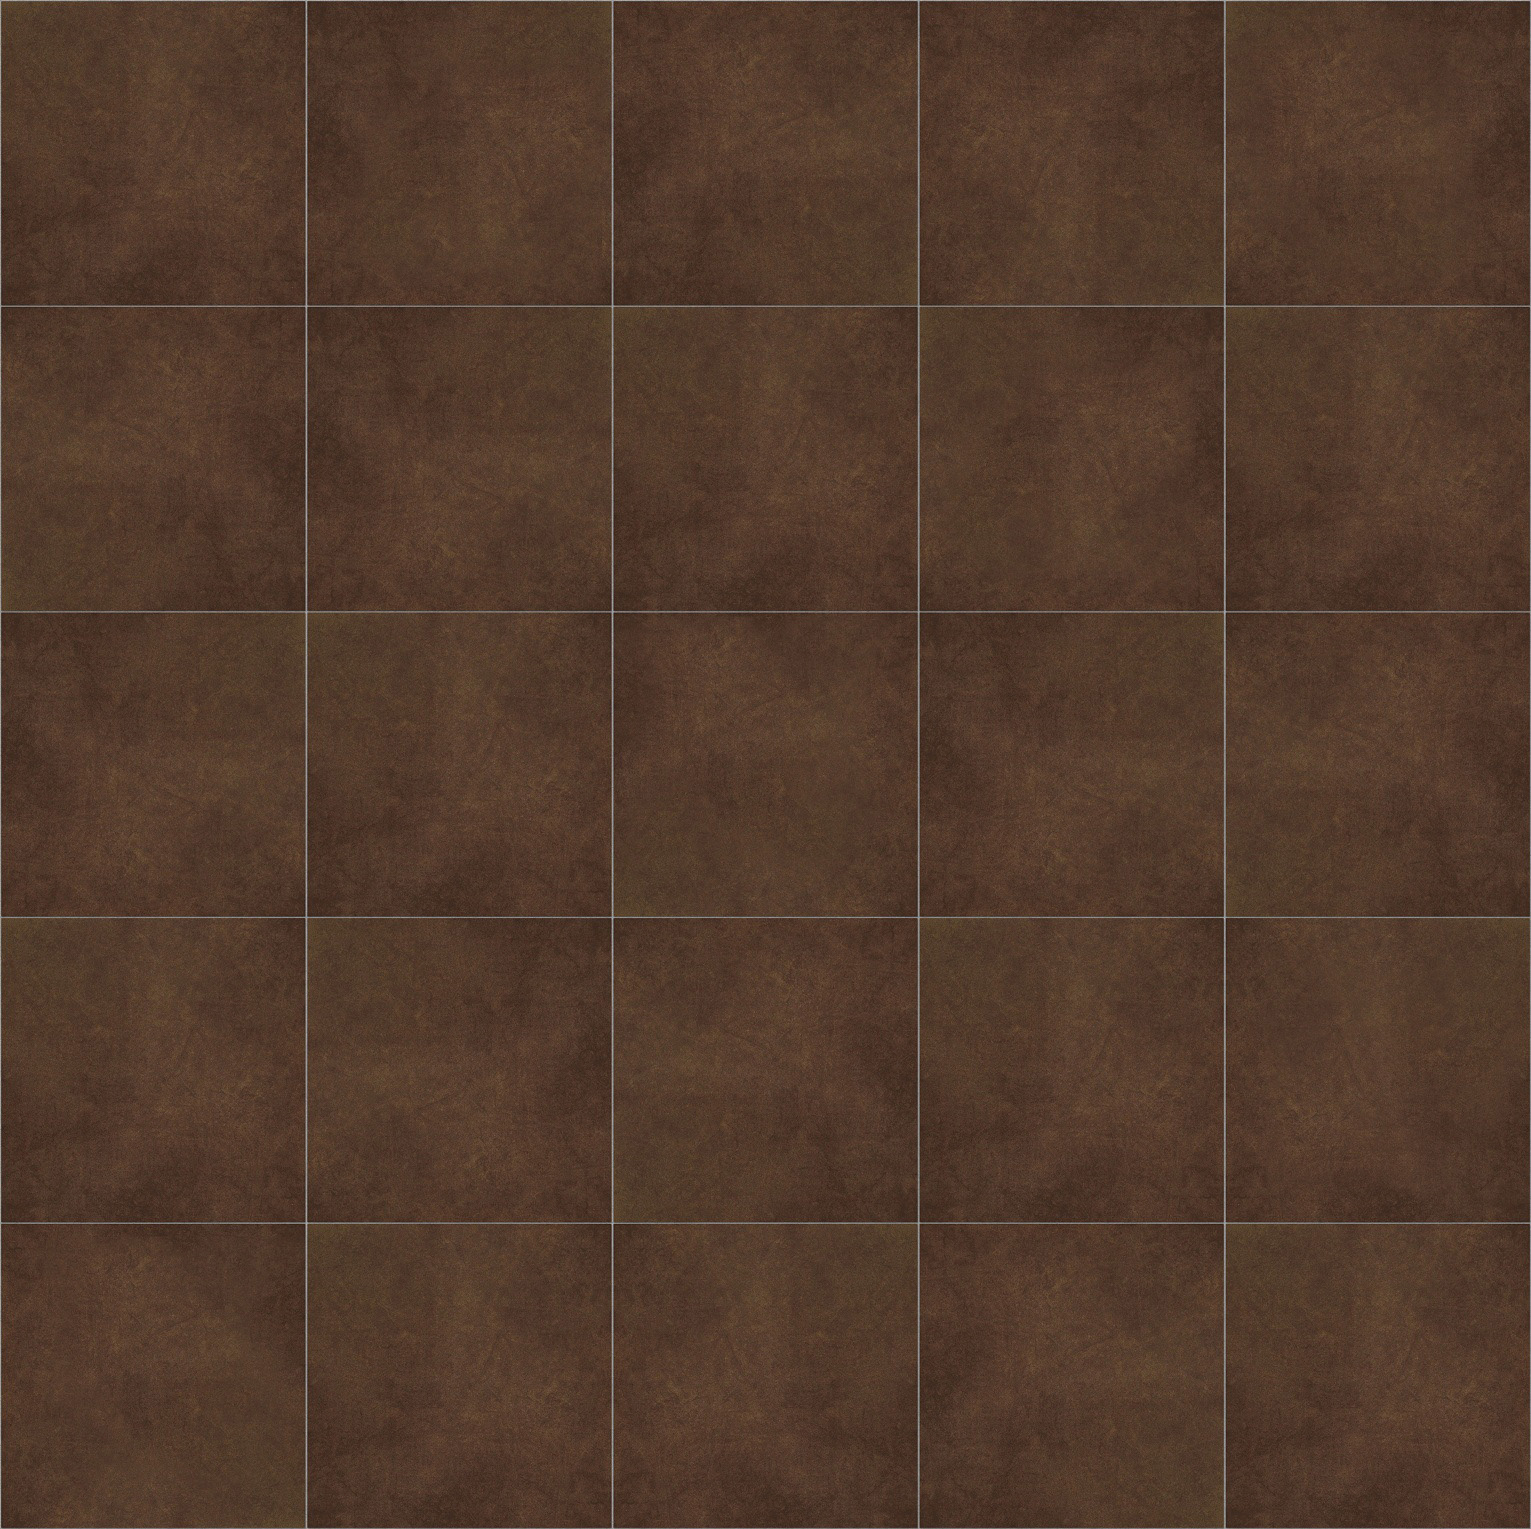 Brown floor tiles texture images - Textuur tiling ...